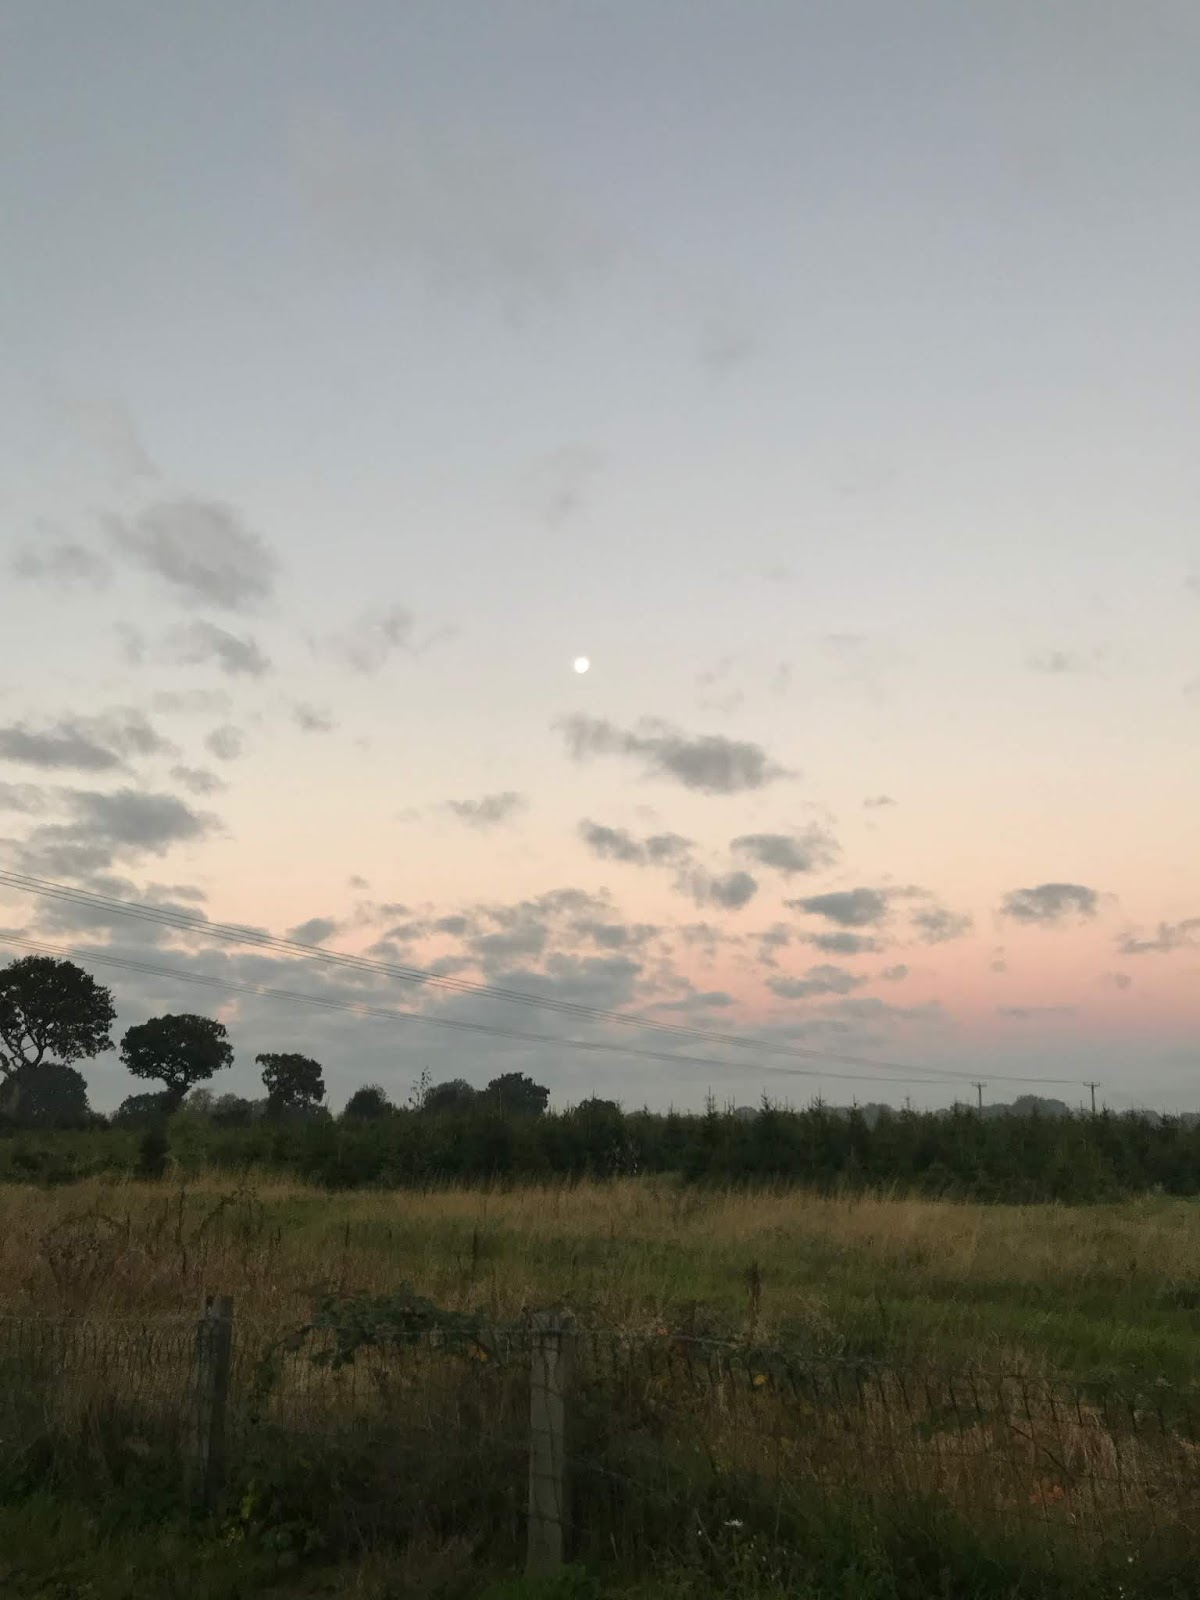 A sunrise over a field in Wythall